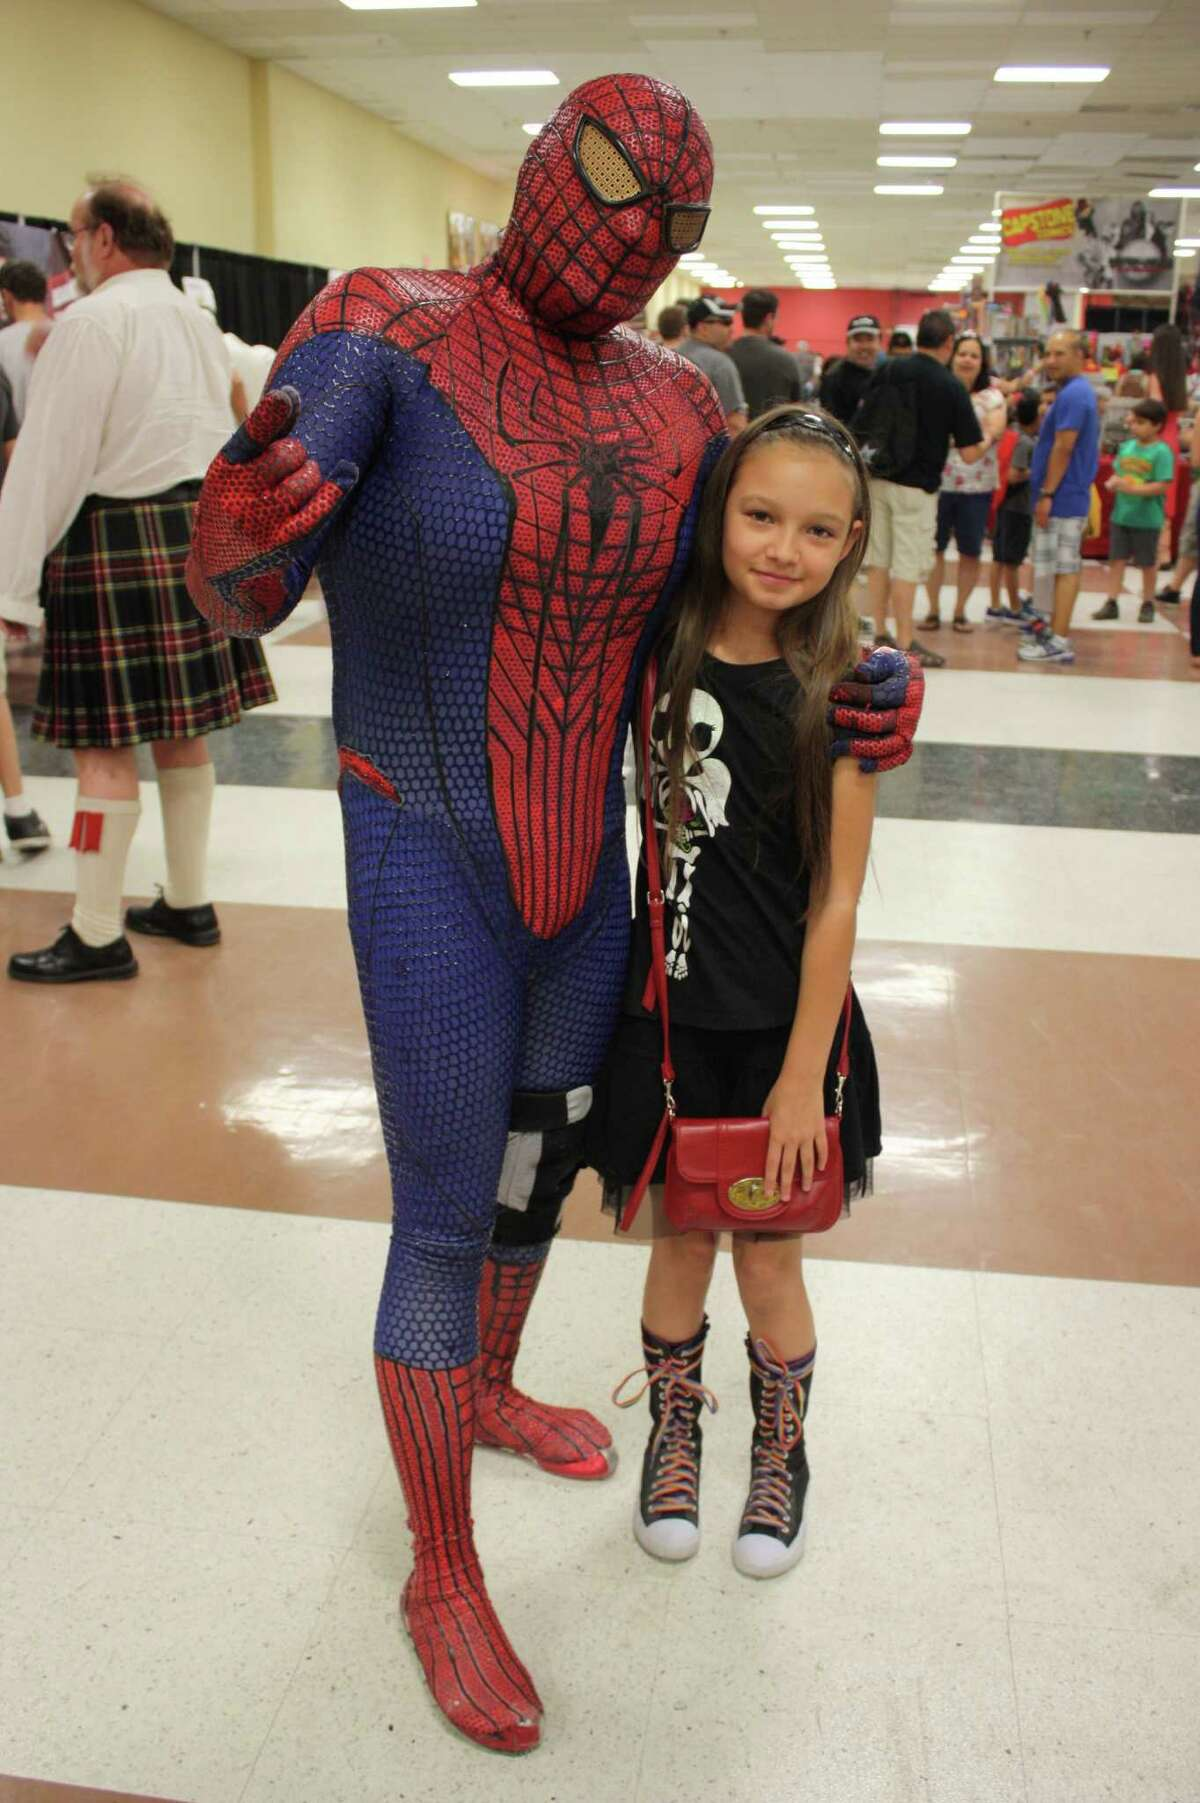 Fans dress to impress at Texas Comicon at the San Antonio Event Center on Sunday, June 23, 2013.